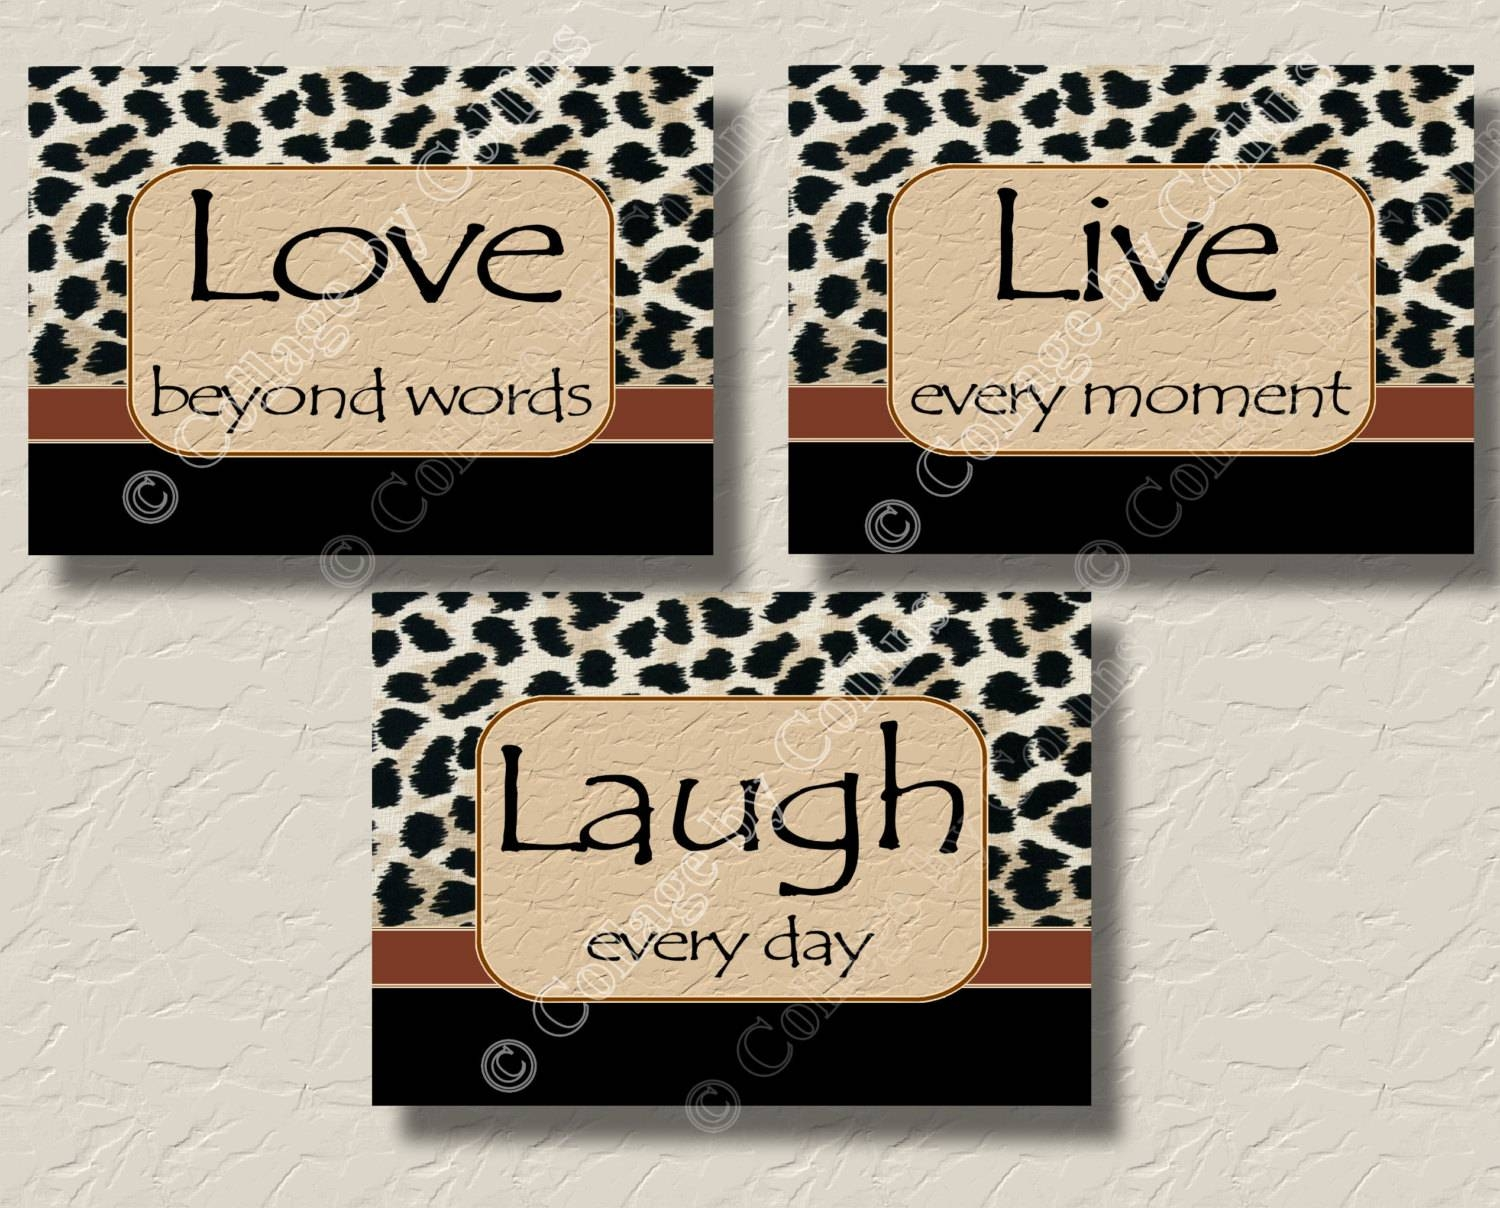 Leopard Print Cheetah Wall Art Picture Prints Live Love Laugh In Most Up To Date Leopard Print Wall Art (View 6 of 25)